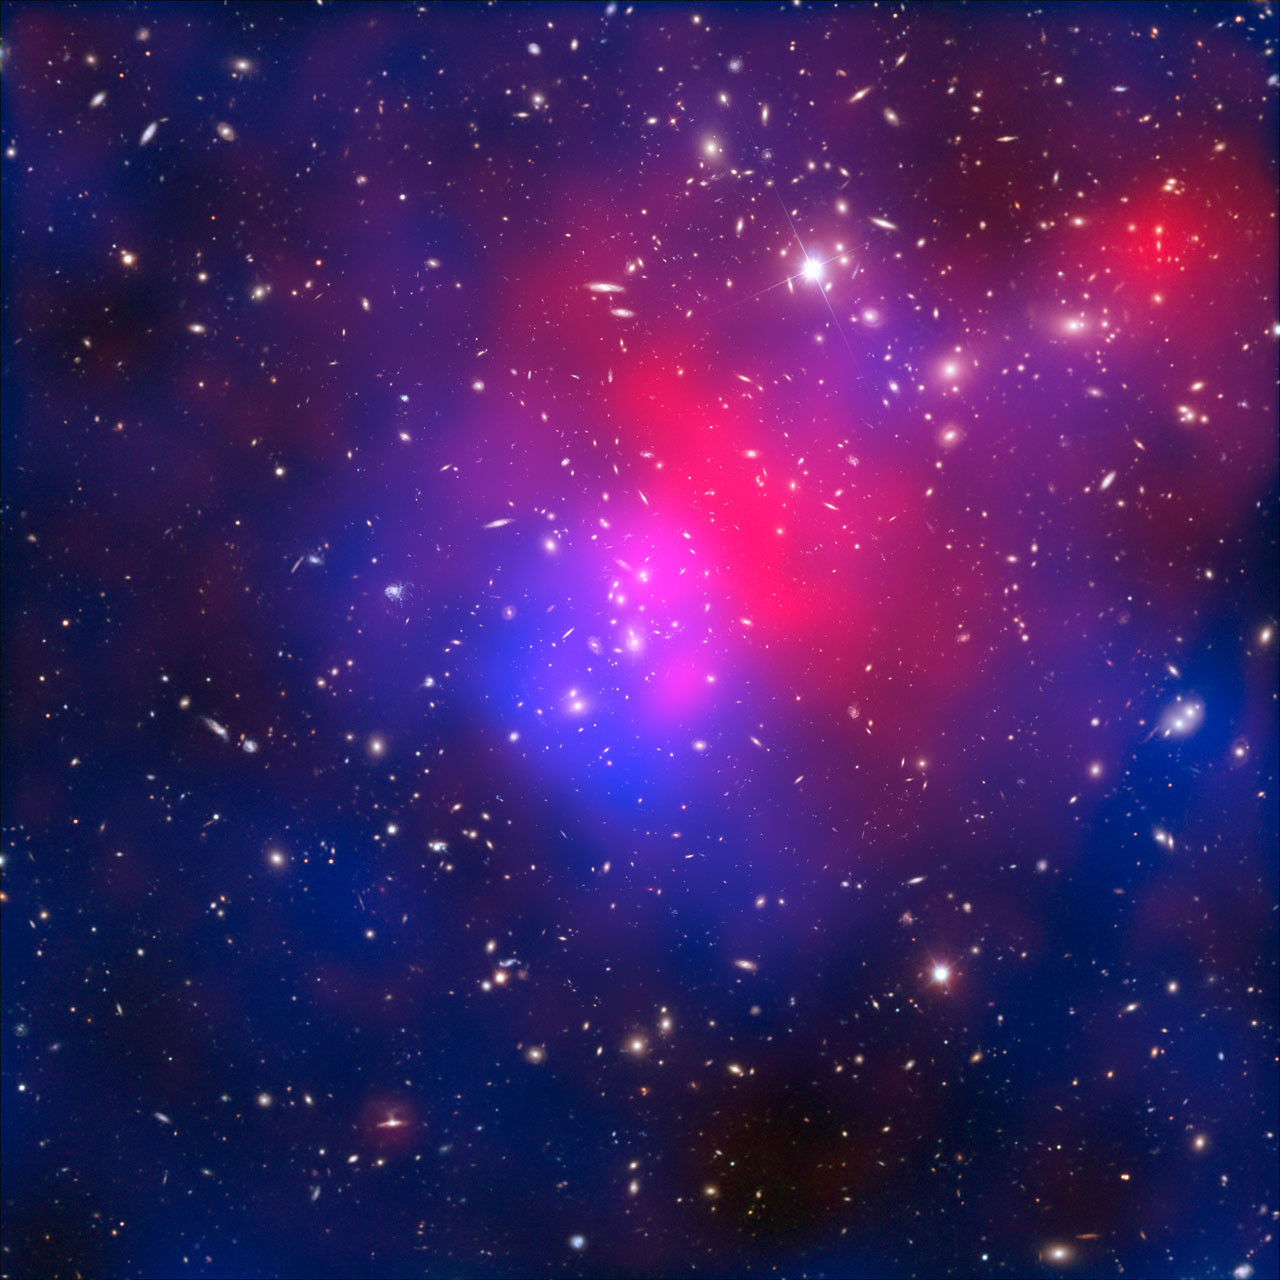 dark space images hubble - photo #21